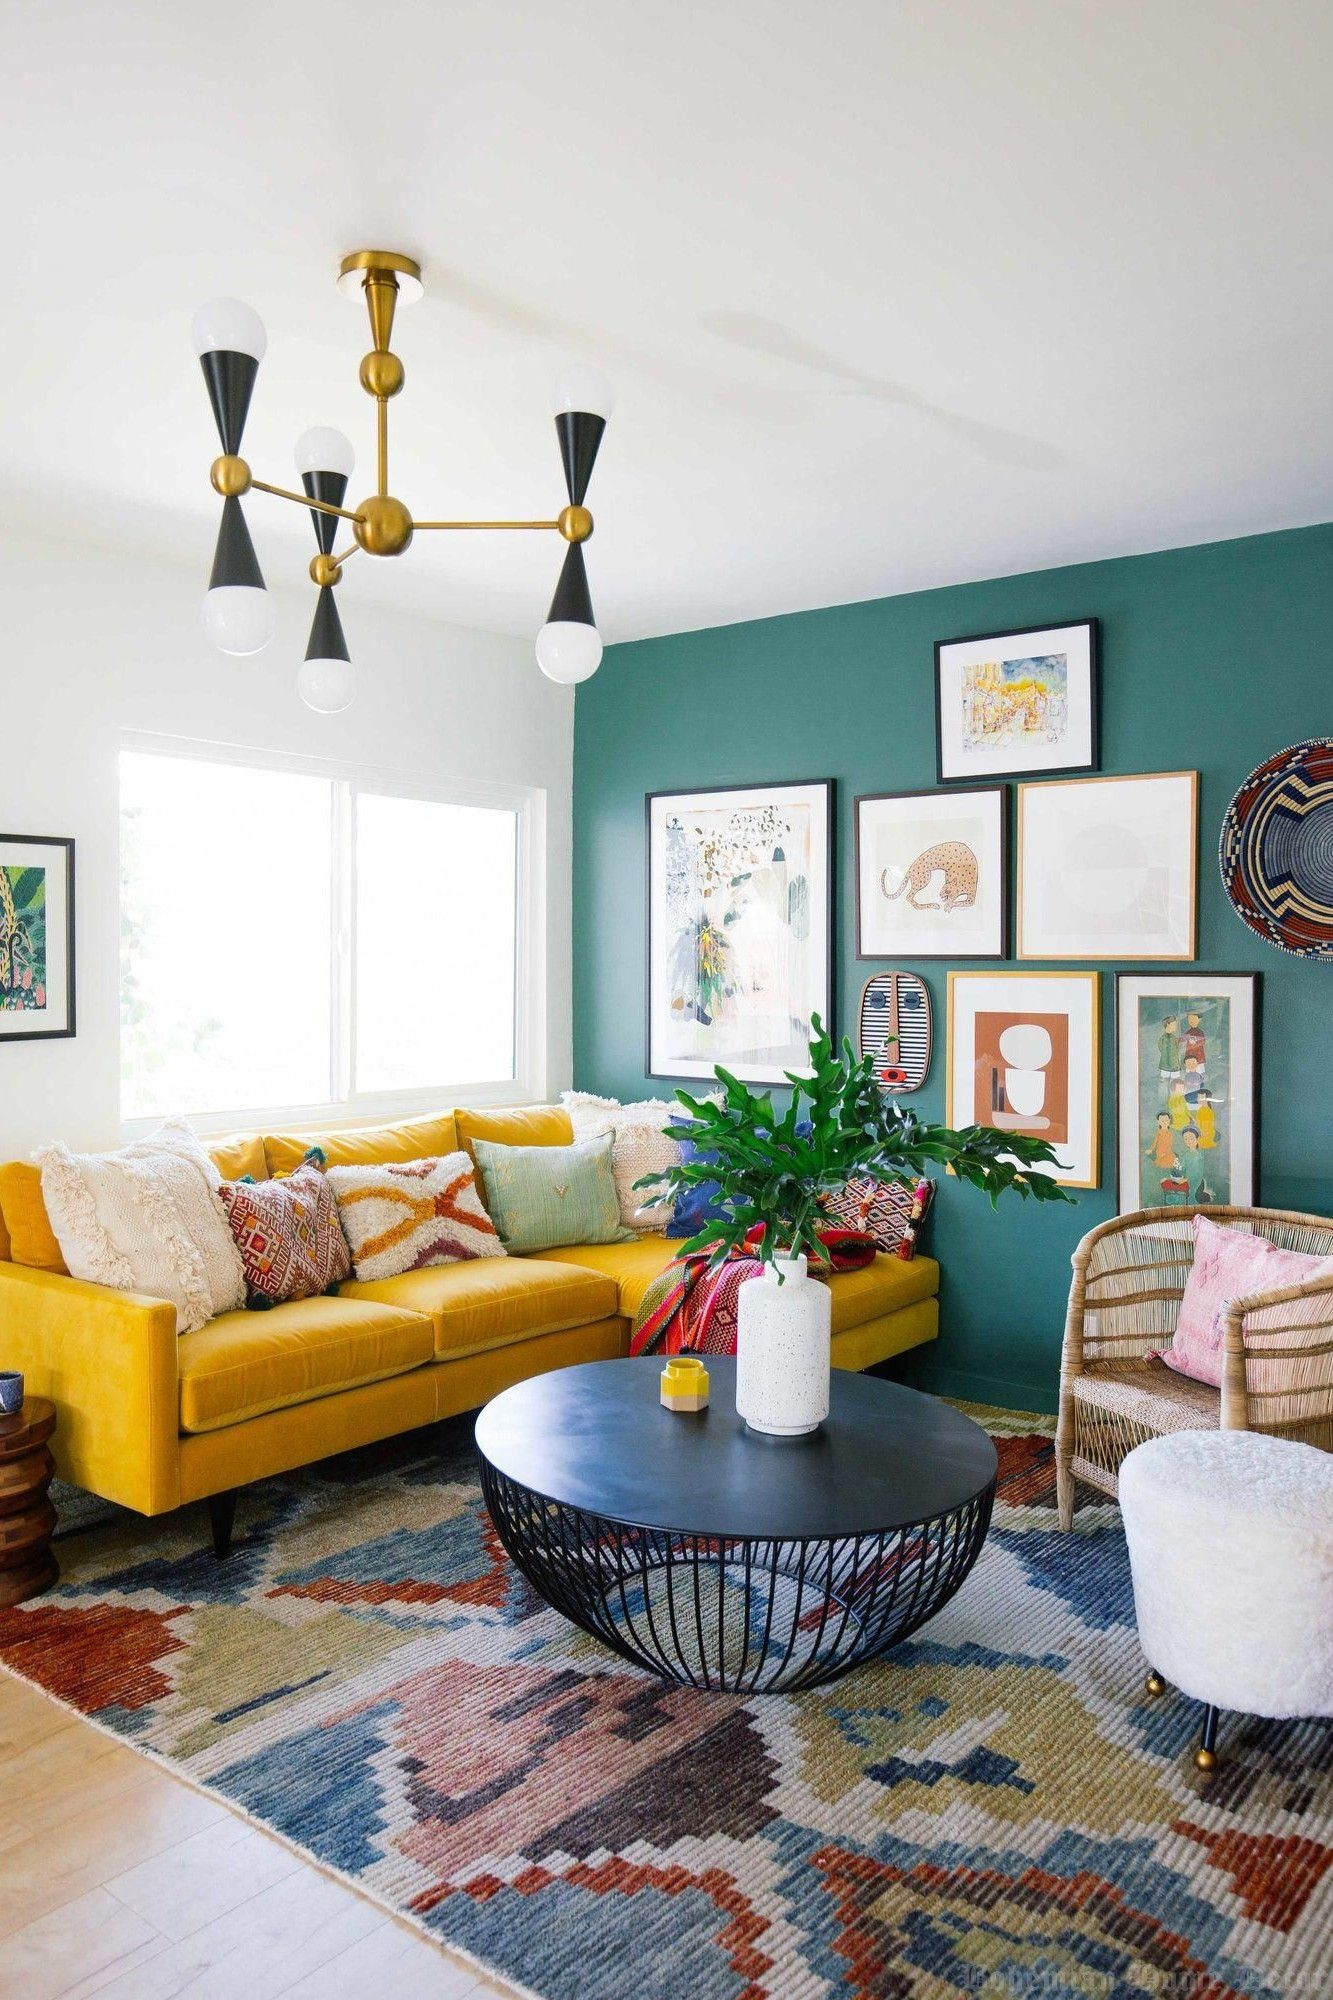 Top 10 Websites To Look For Bohemian Home Decor